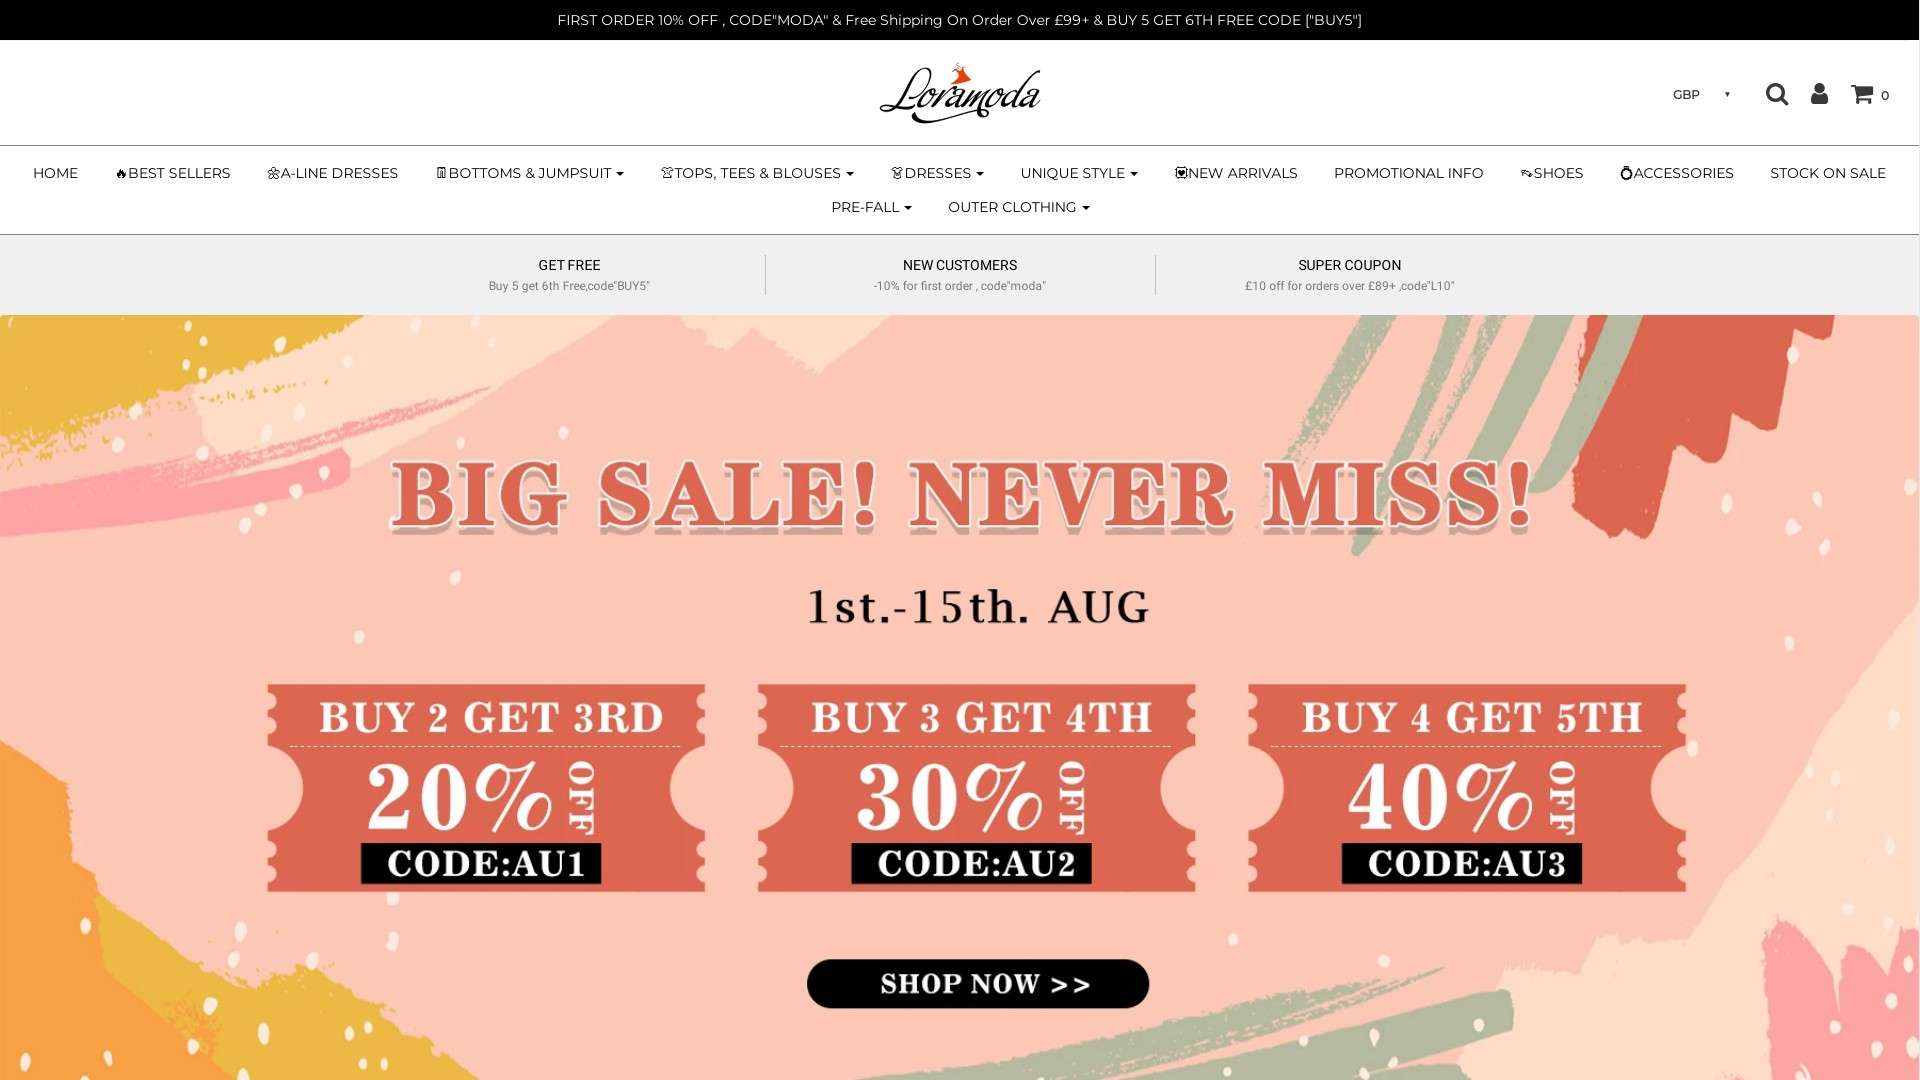 Is Loramoda a Scam? Review of the Online Store